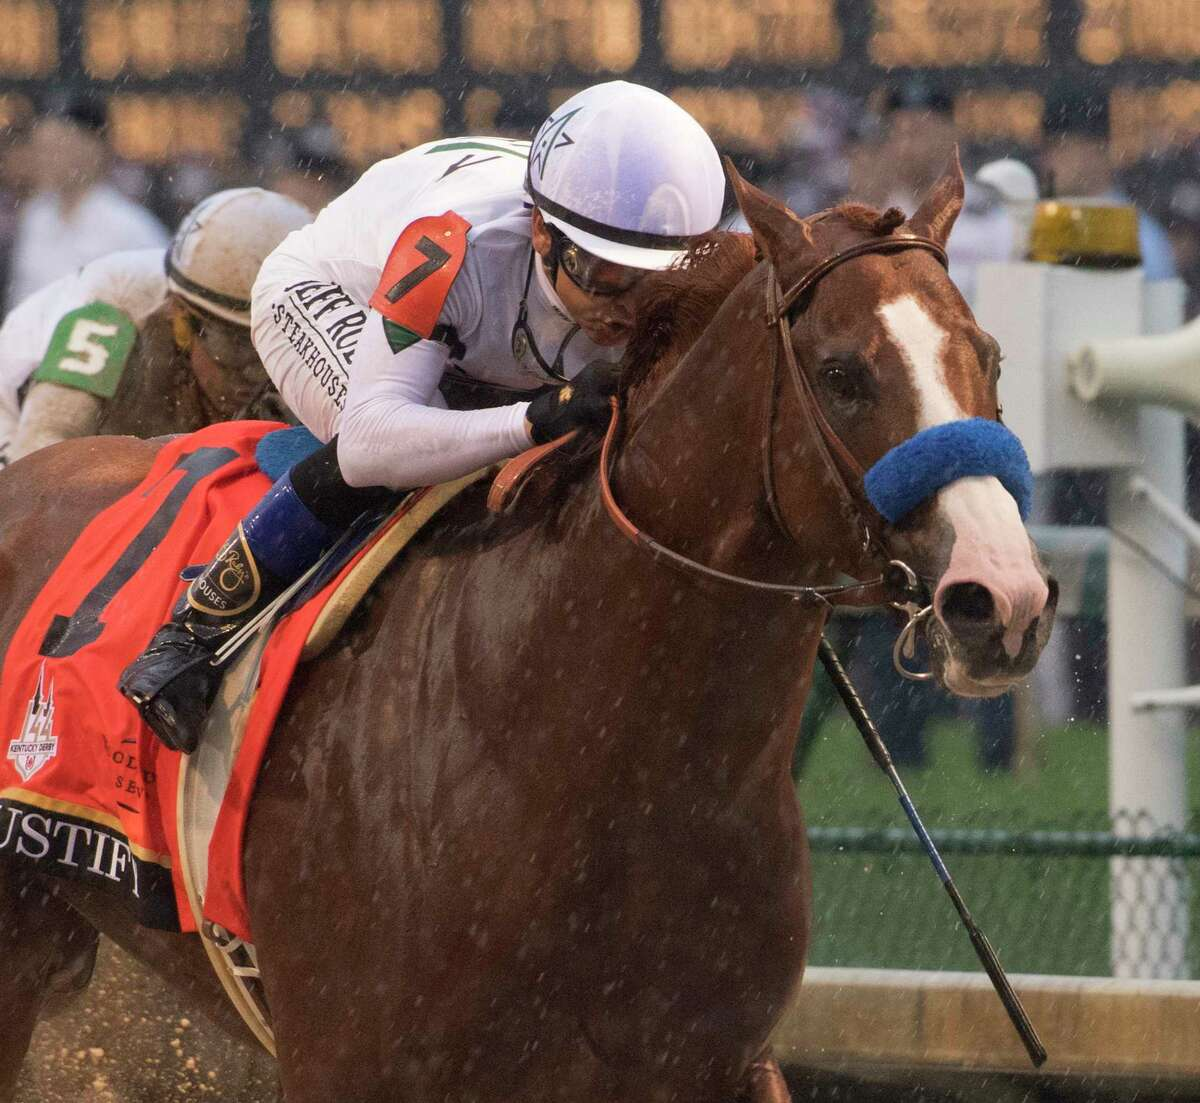 Justify with jockey Mike Smith goes to the lead from the to win the 144th running of the Kentucky Derby at Churchill Downs Saturday May 5, 2018 in Louisville, Kentucky (Skip Dickstein/Times Union)